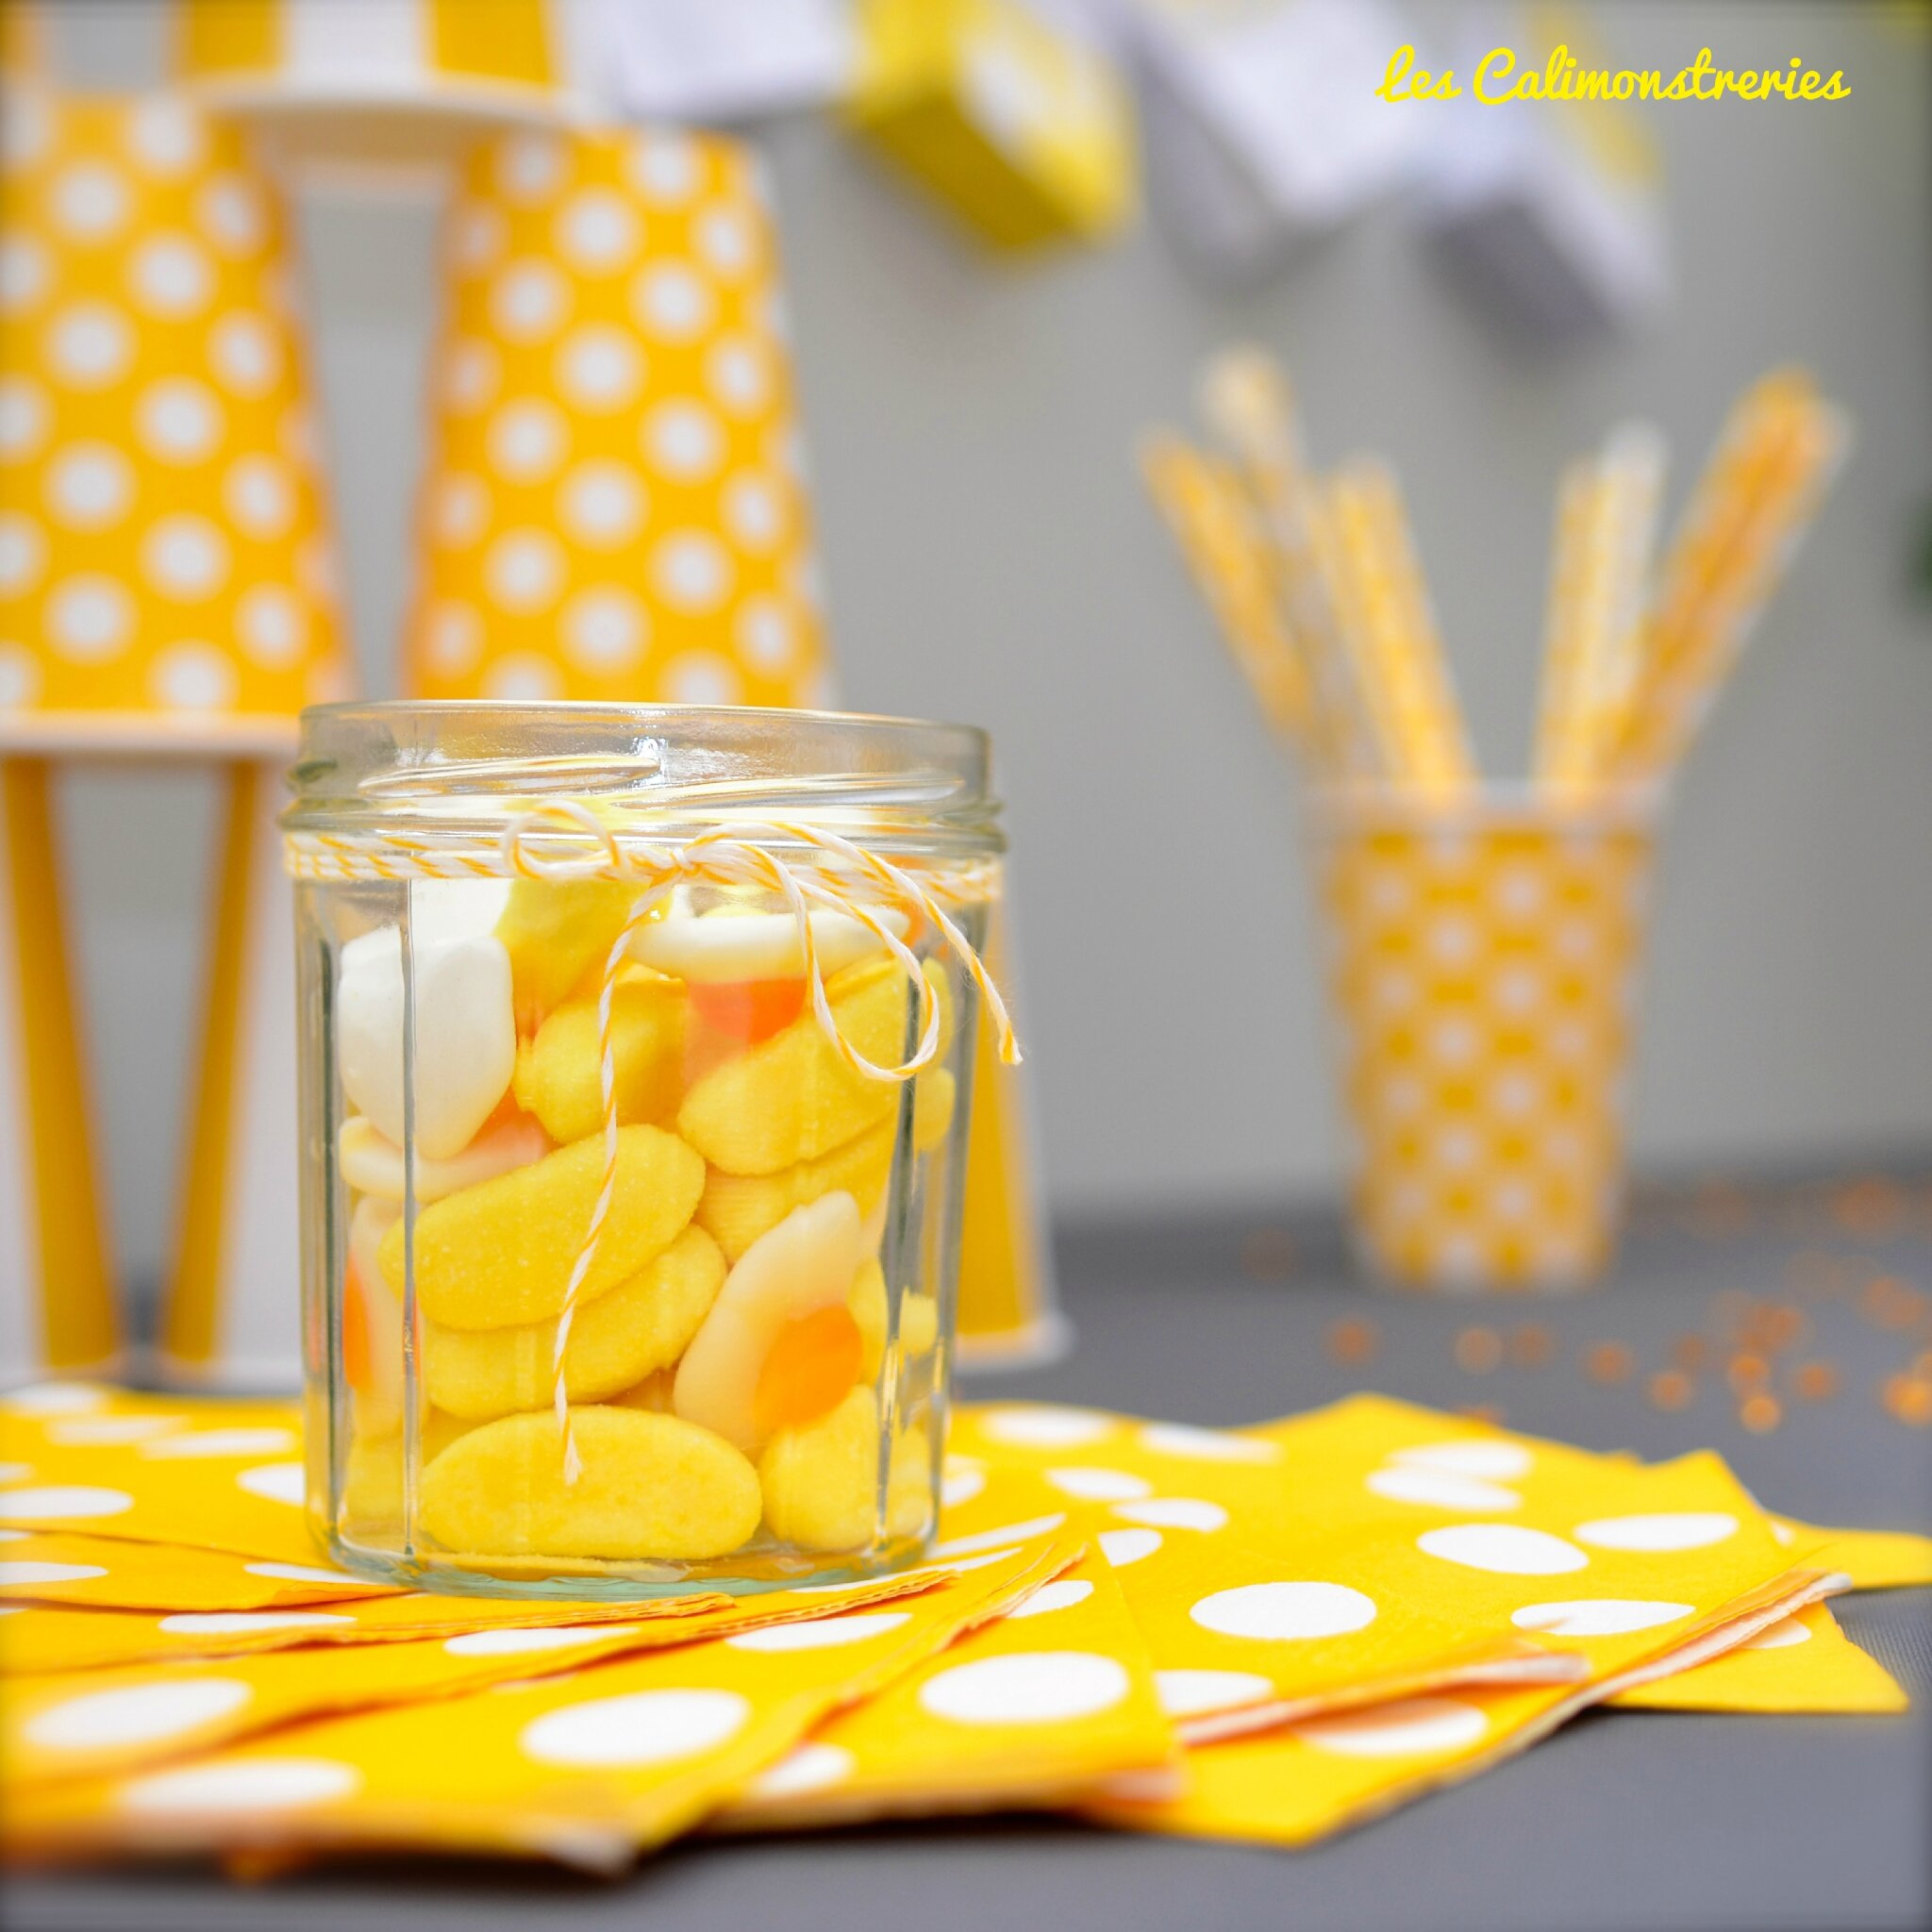 Un anniversaire en gris et jaune les calimonstreries for Decoration jaune